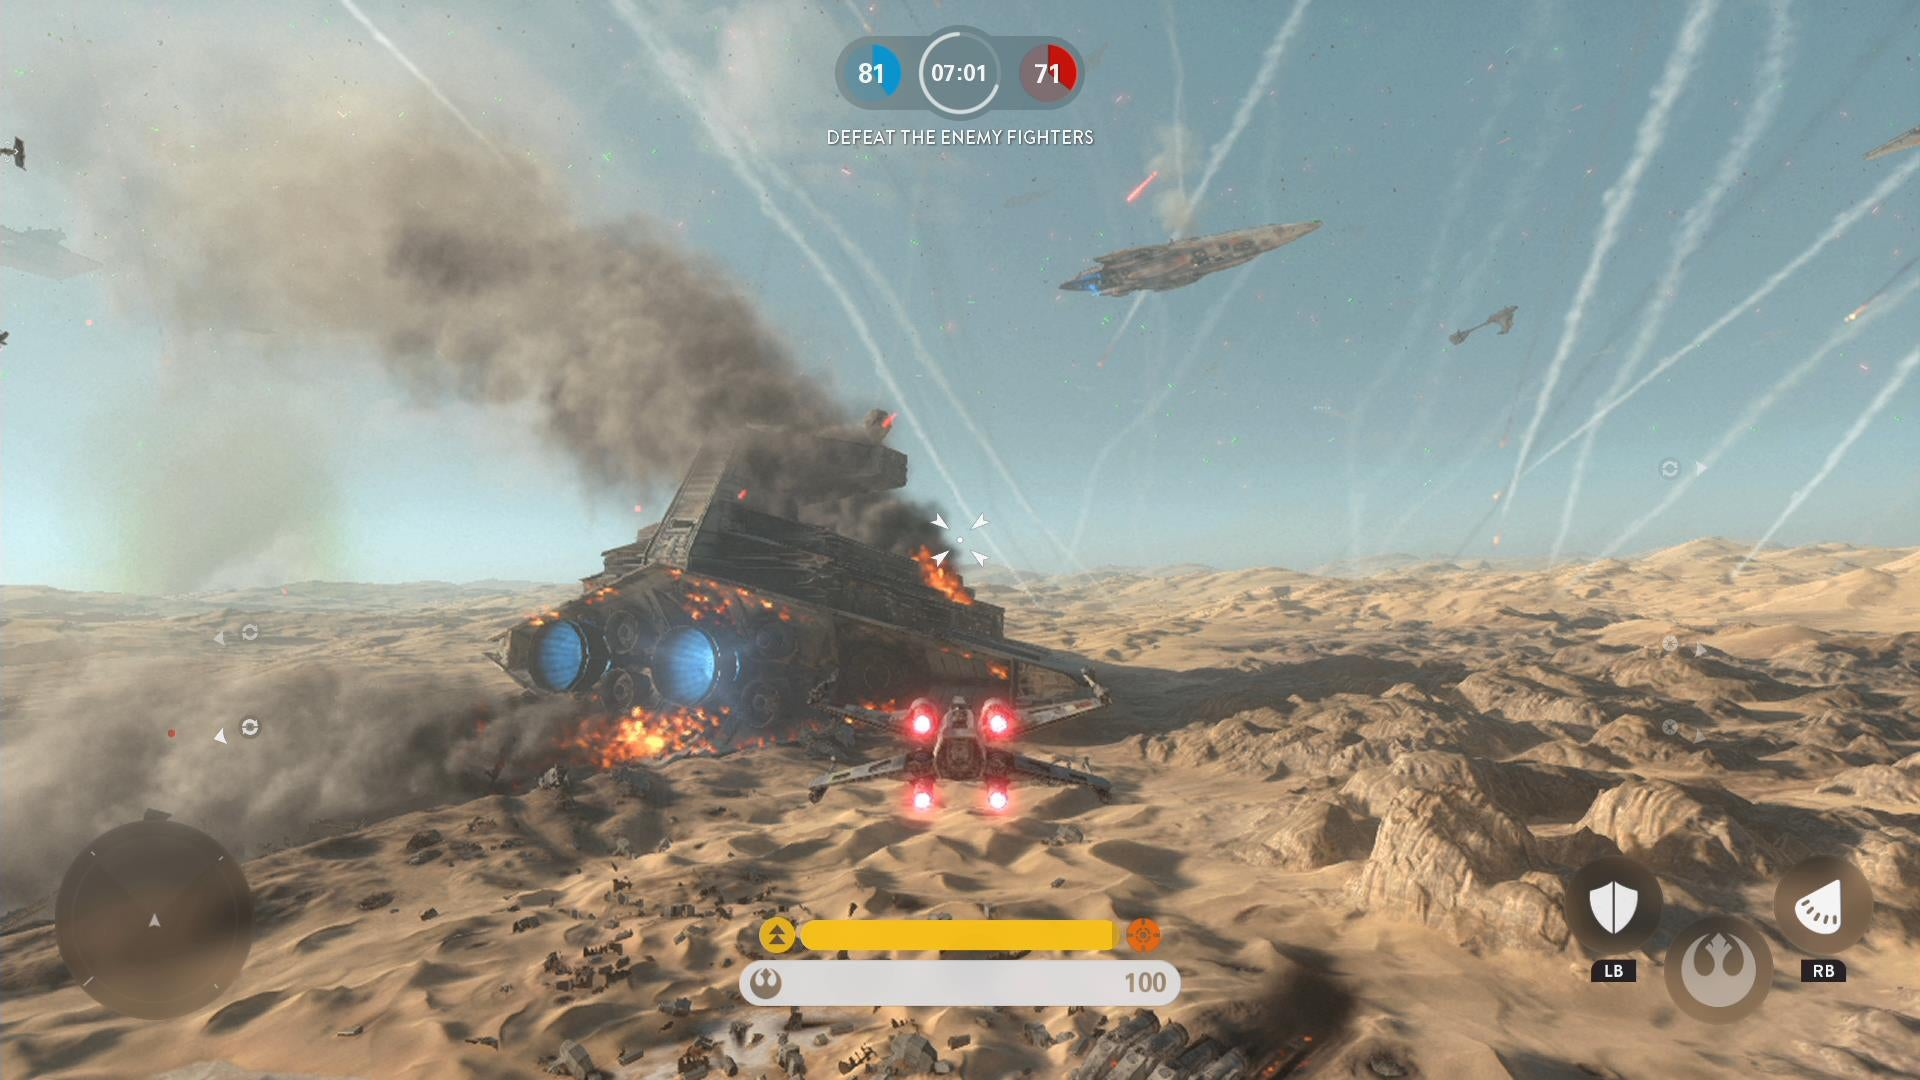 battle-of-jakku dlc ea episode-seven jakku star-wars star-wars-battlefront star-wars-the-force-awakens the-force-awakens